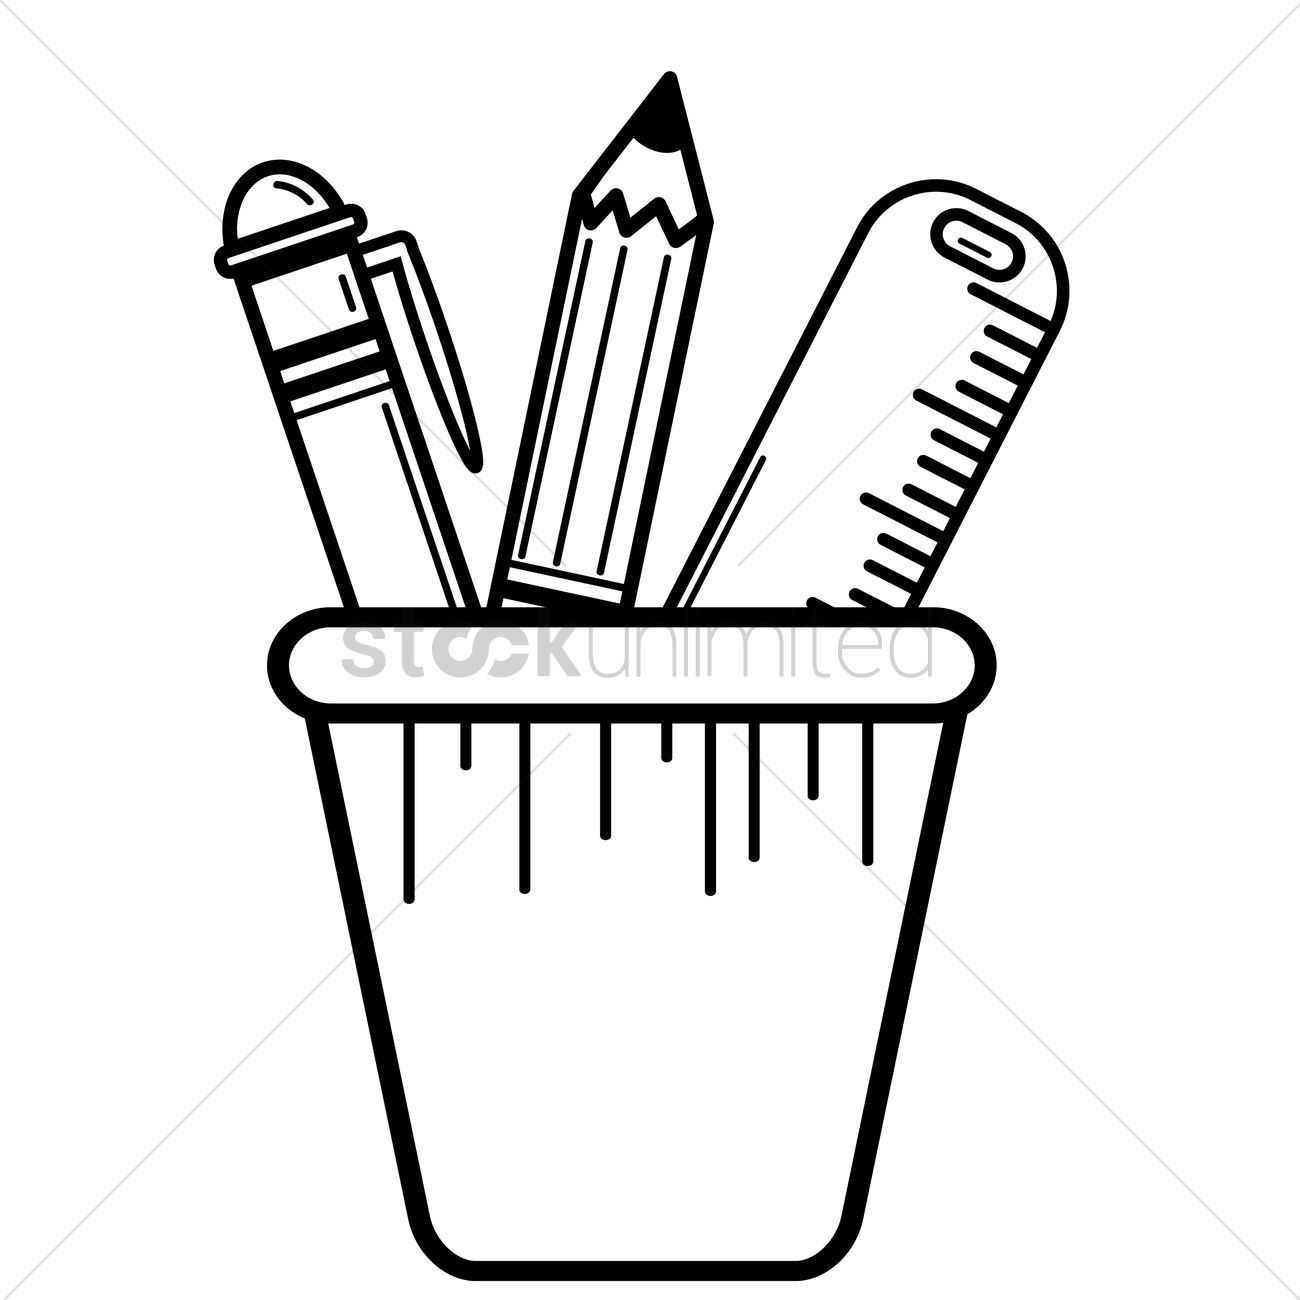 Pencils and pens clipart black and white clipart freeuse library Free Pen pencil and ruler in pen holder Vector Image ... clipart freeuse library